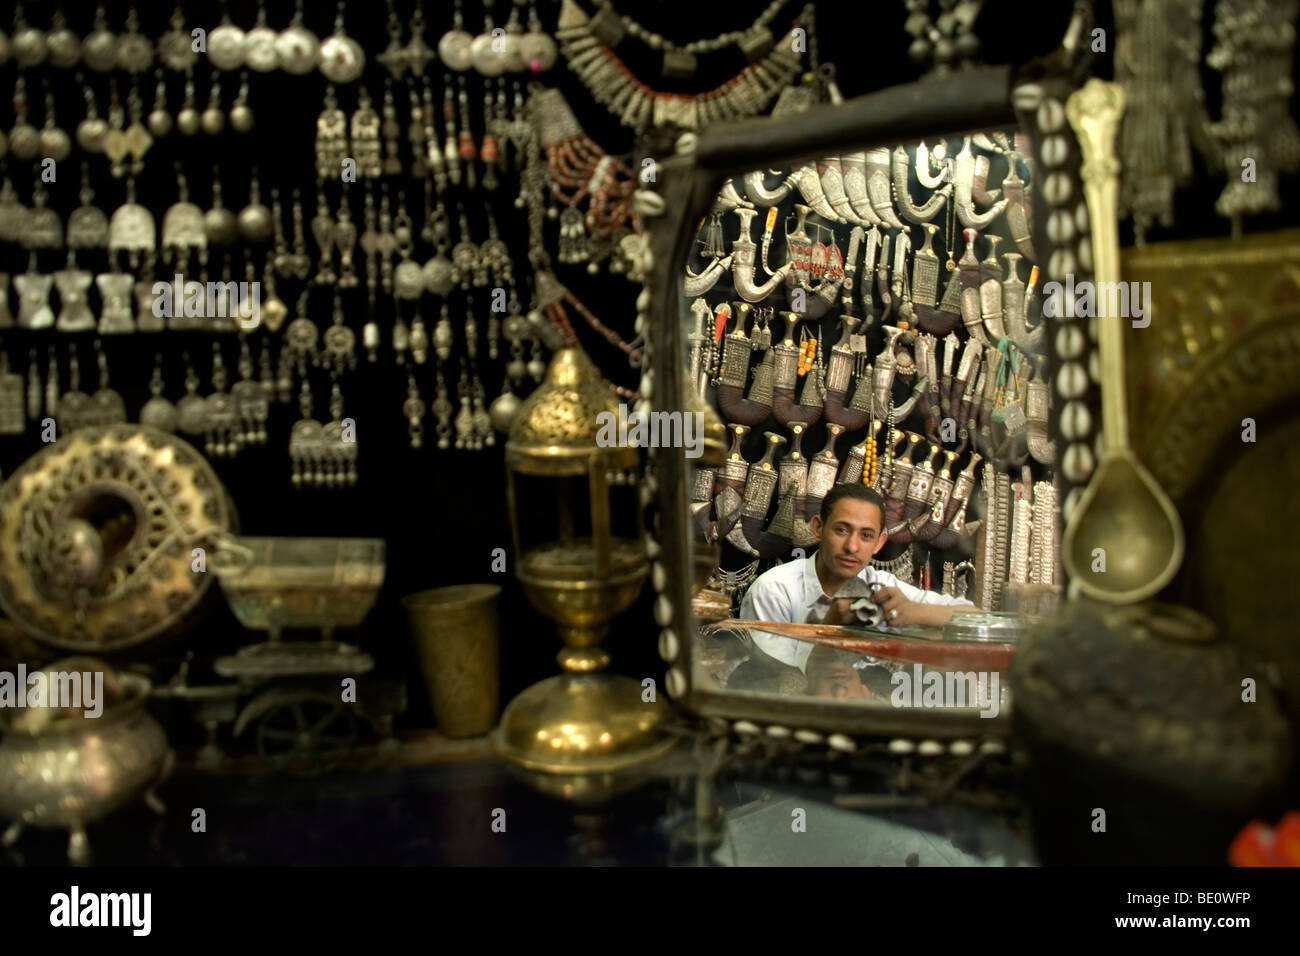 A jewelery vendor seen in the reflection of a mirror among his wares in a store in the old city of Sana'a, Yemen. - Stock Image